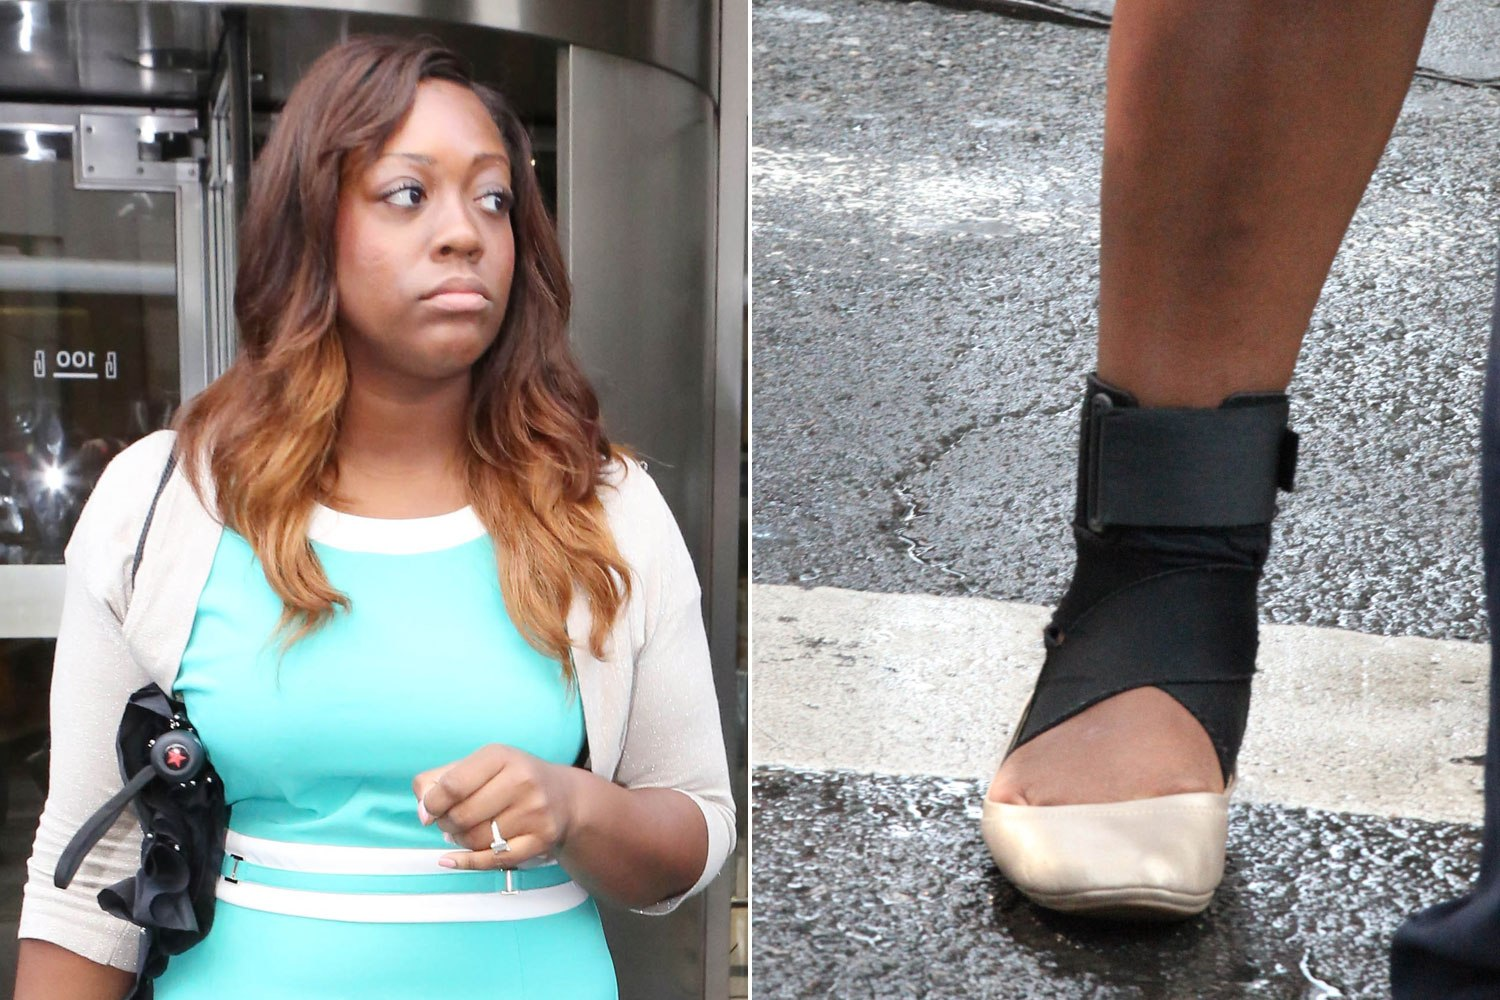 Sharpton's daughter gets $95K settlement for sprained ankle